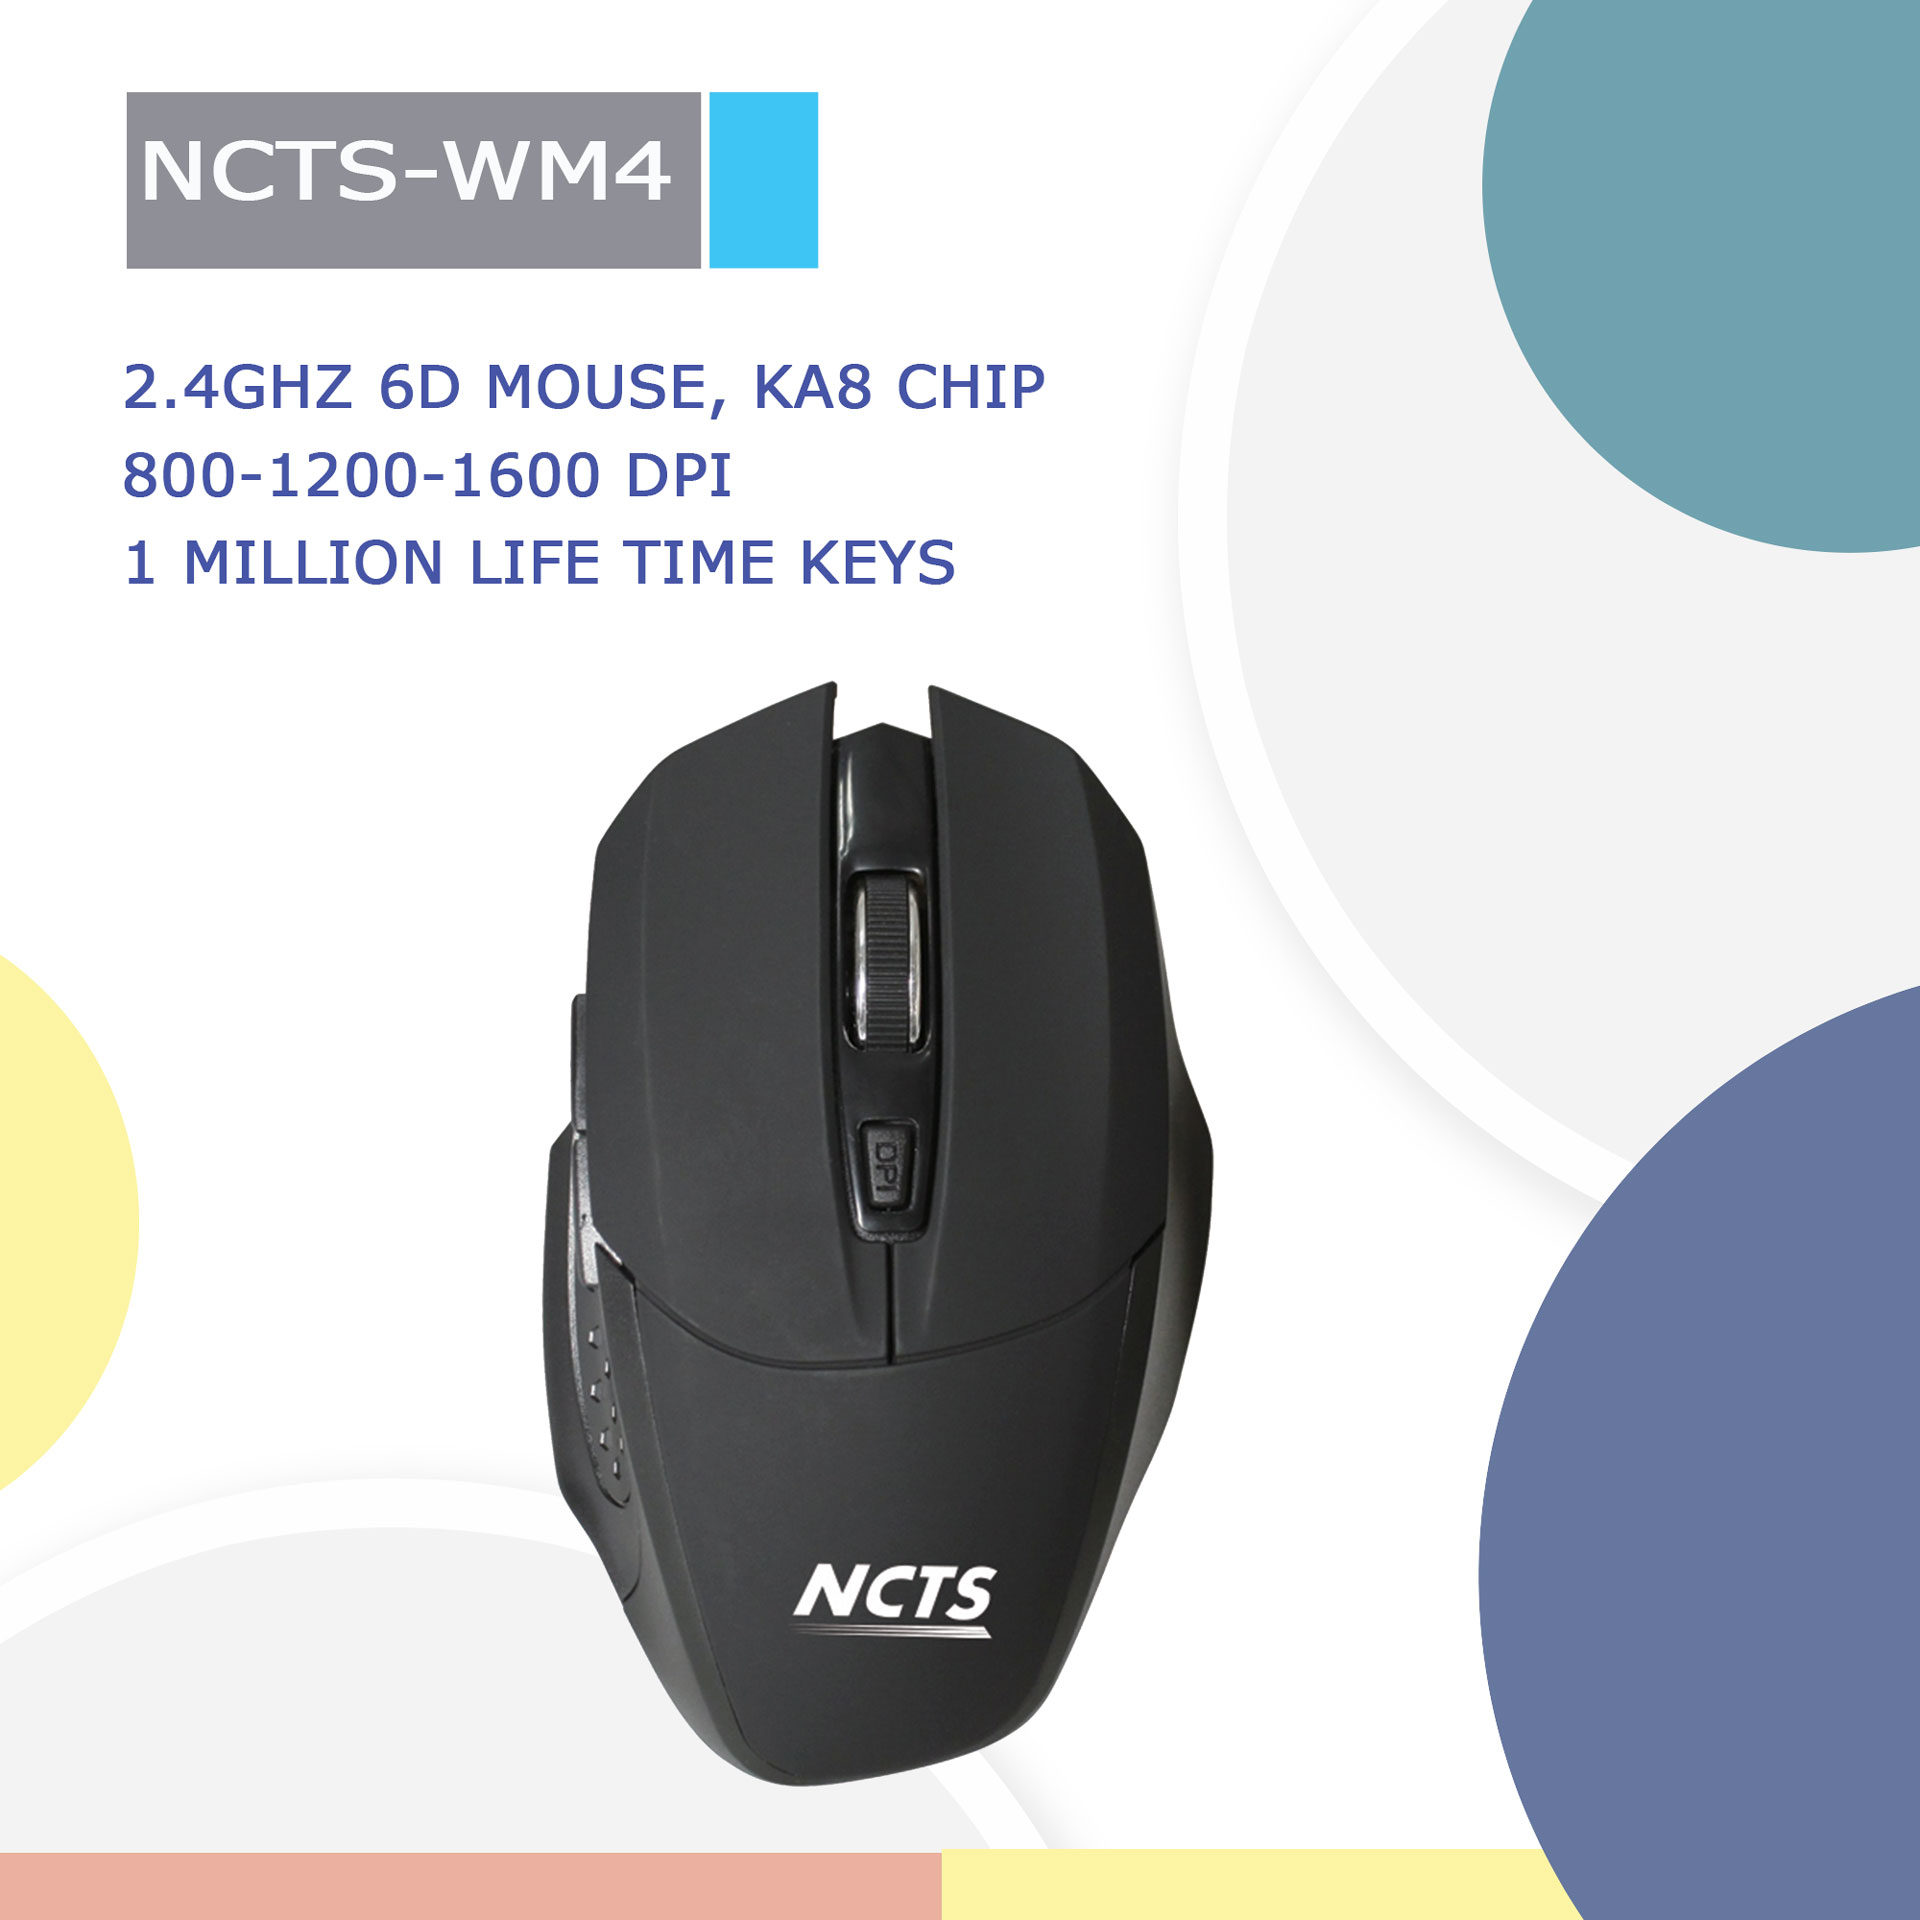 NCTS-WM4